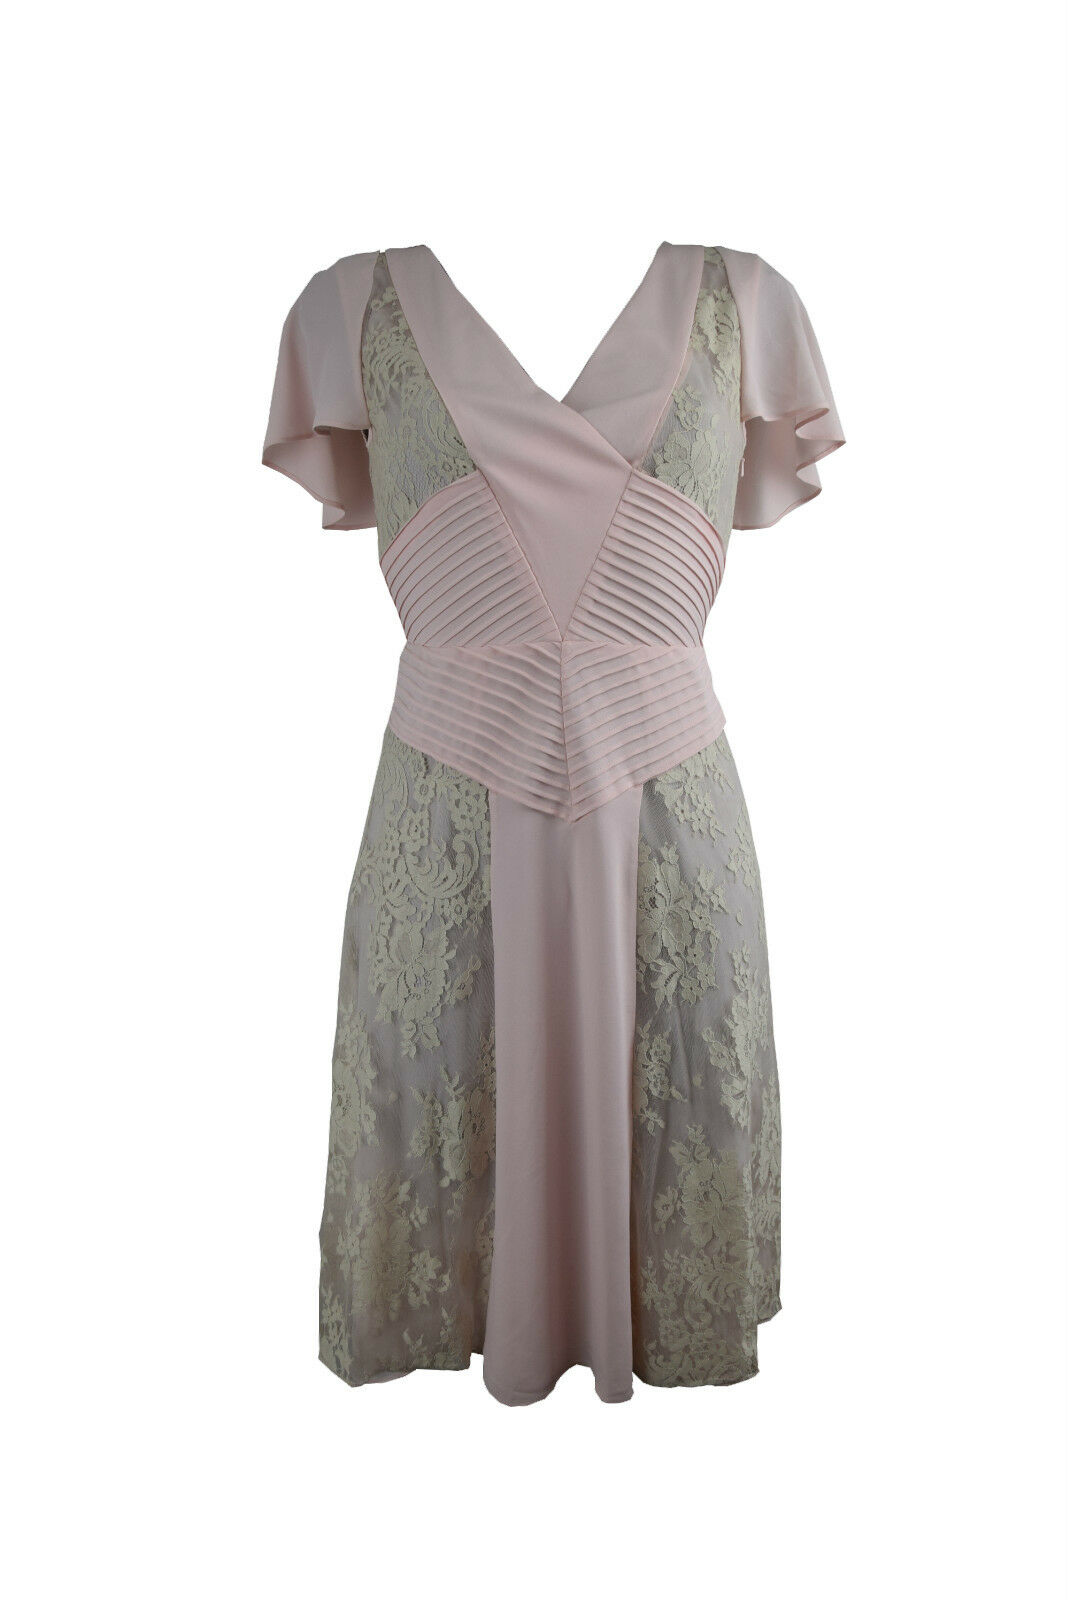 ALICE By Temperley London Baby rosa Pizzo Pannello DRESS Dimensione UK8